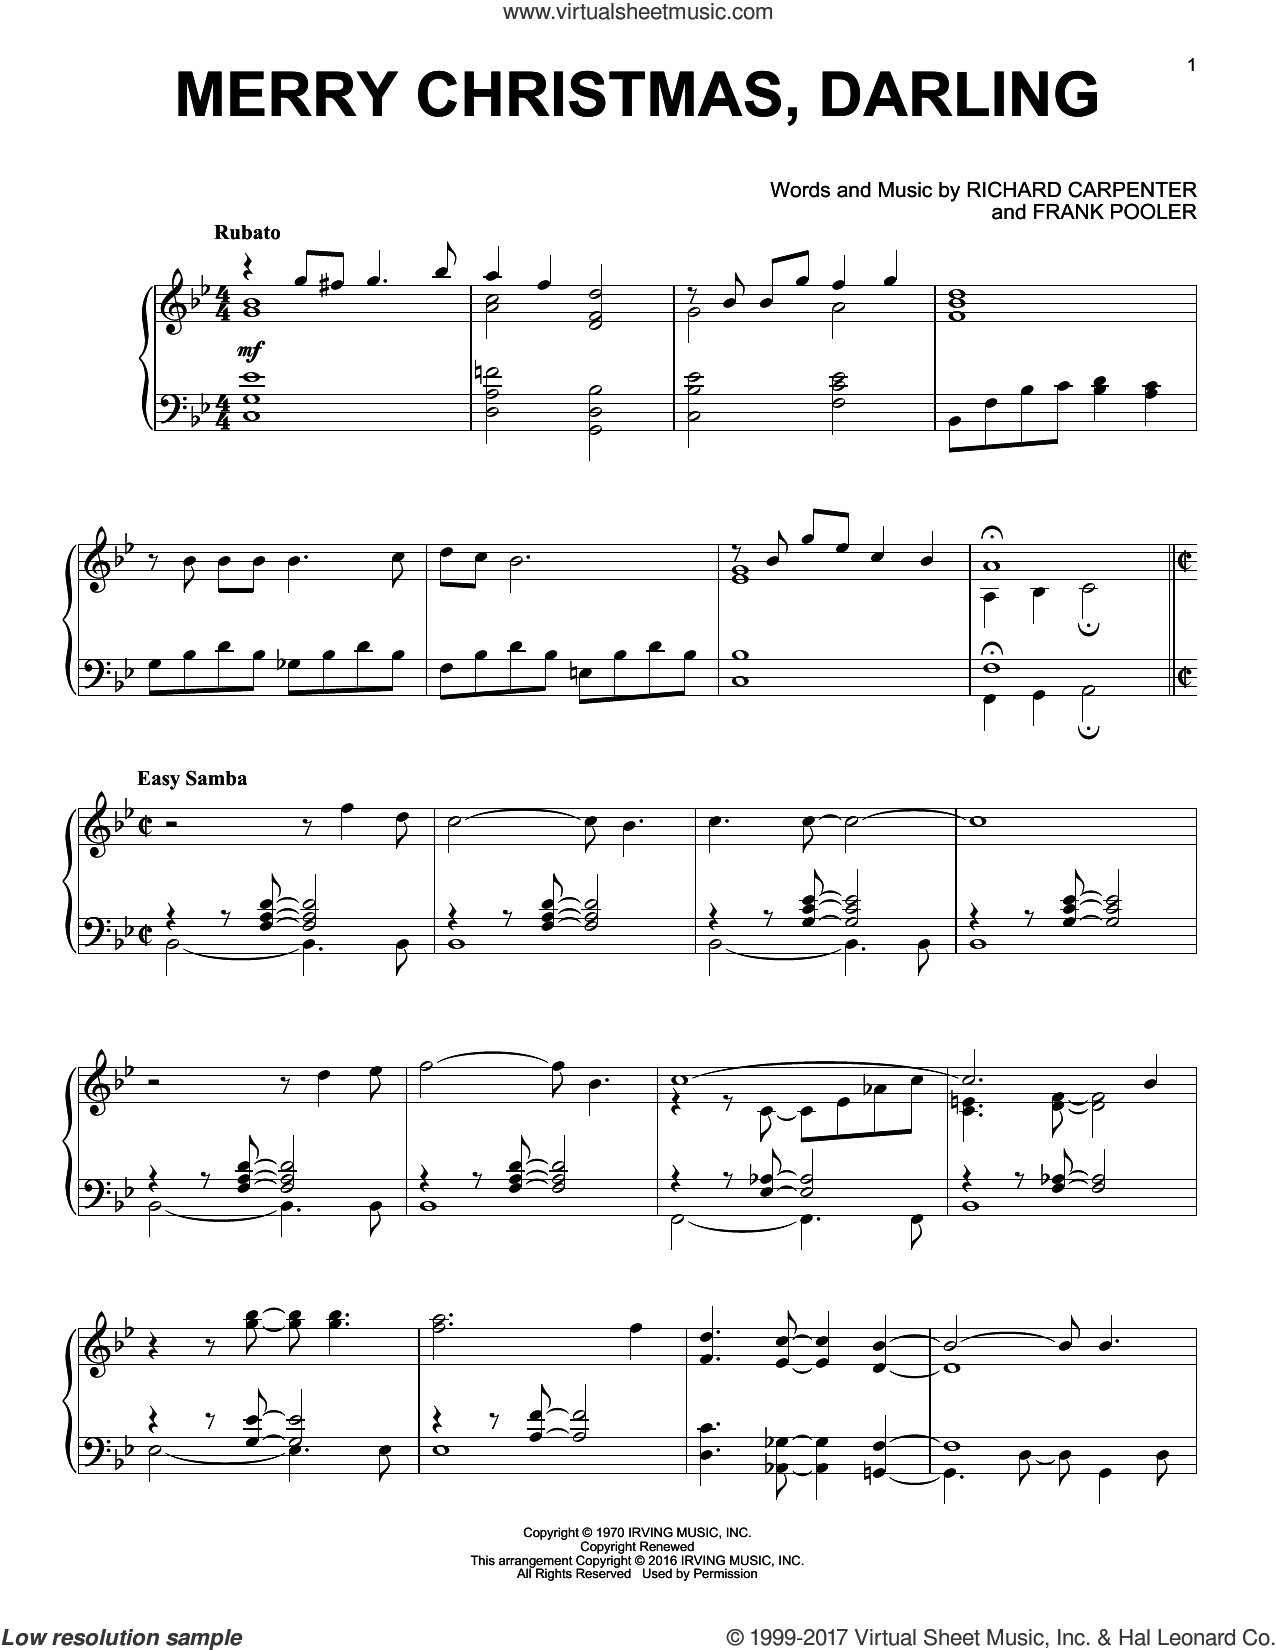 Merry Christmas, Darling sheet music for piano solo by Frank Pooler, Carpenters and Richard Carpenter, intermediate skill level